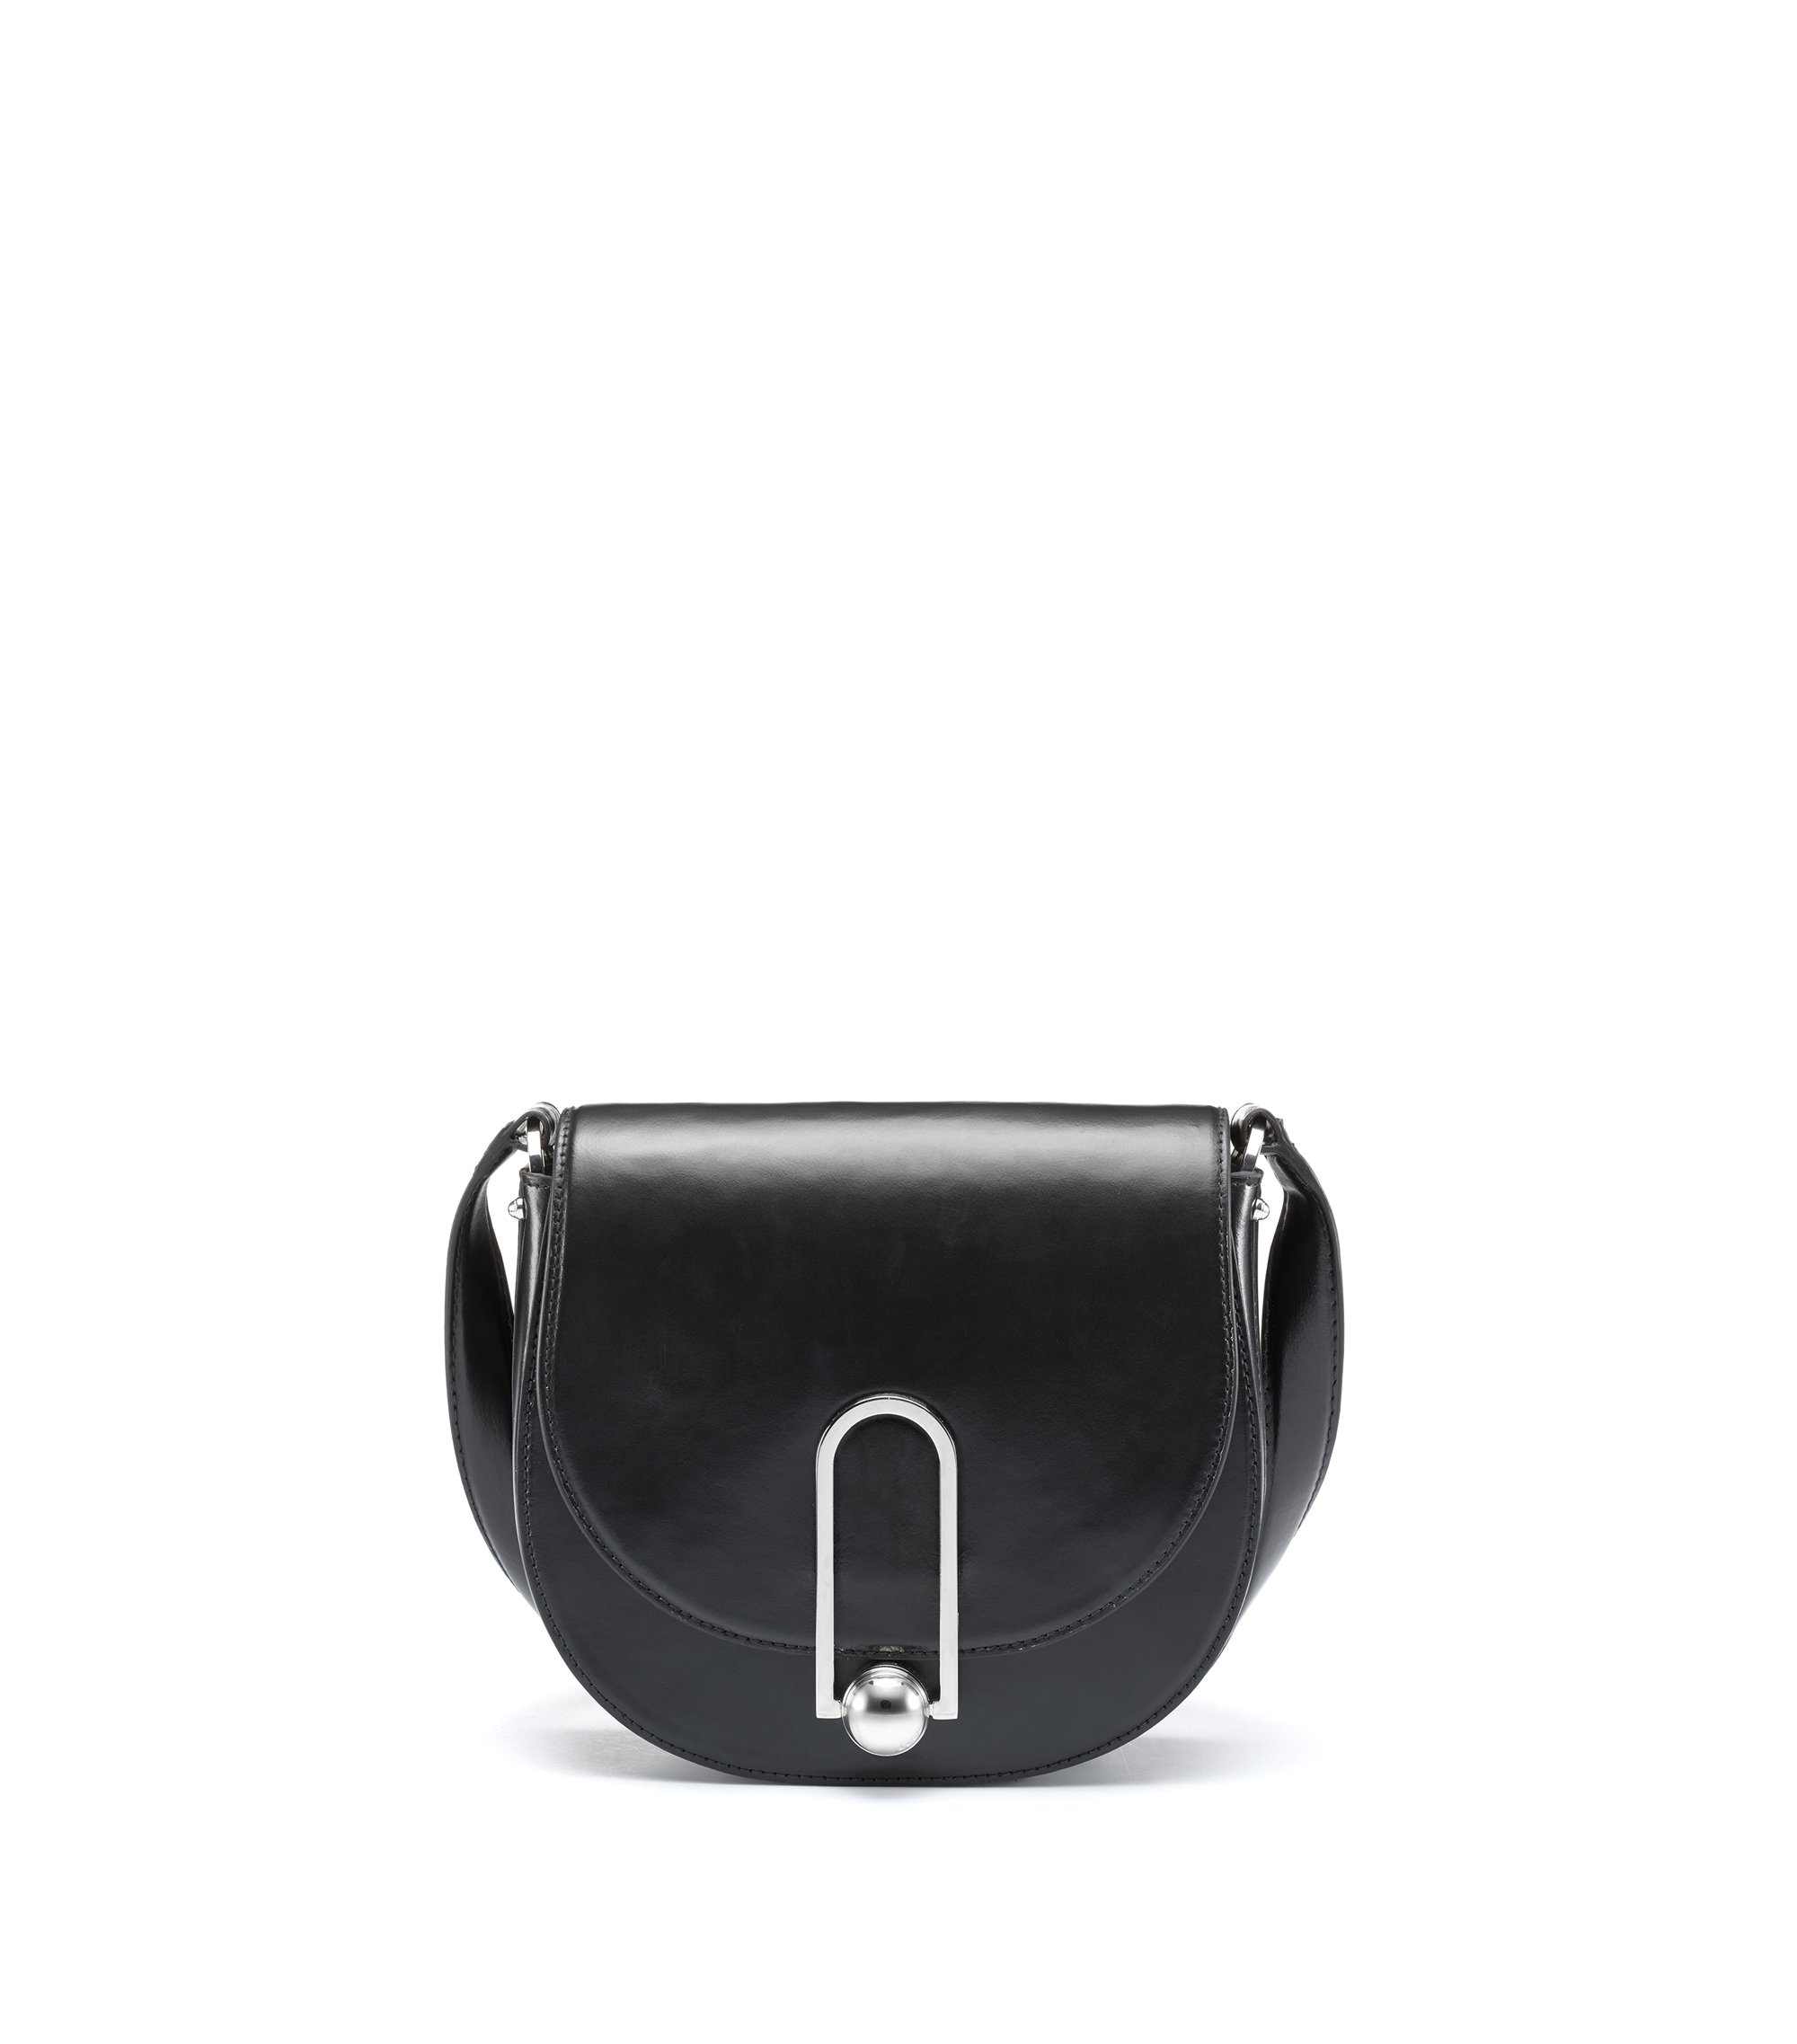 Smooth leather saddle bag with polished hardware, Black